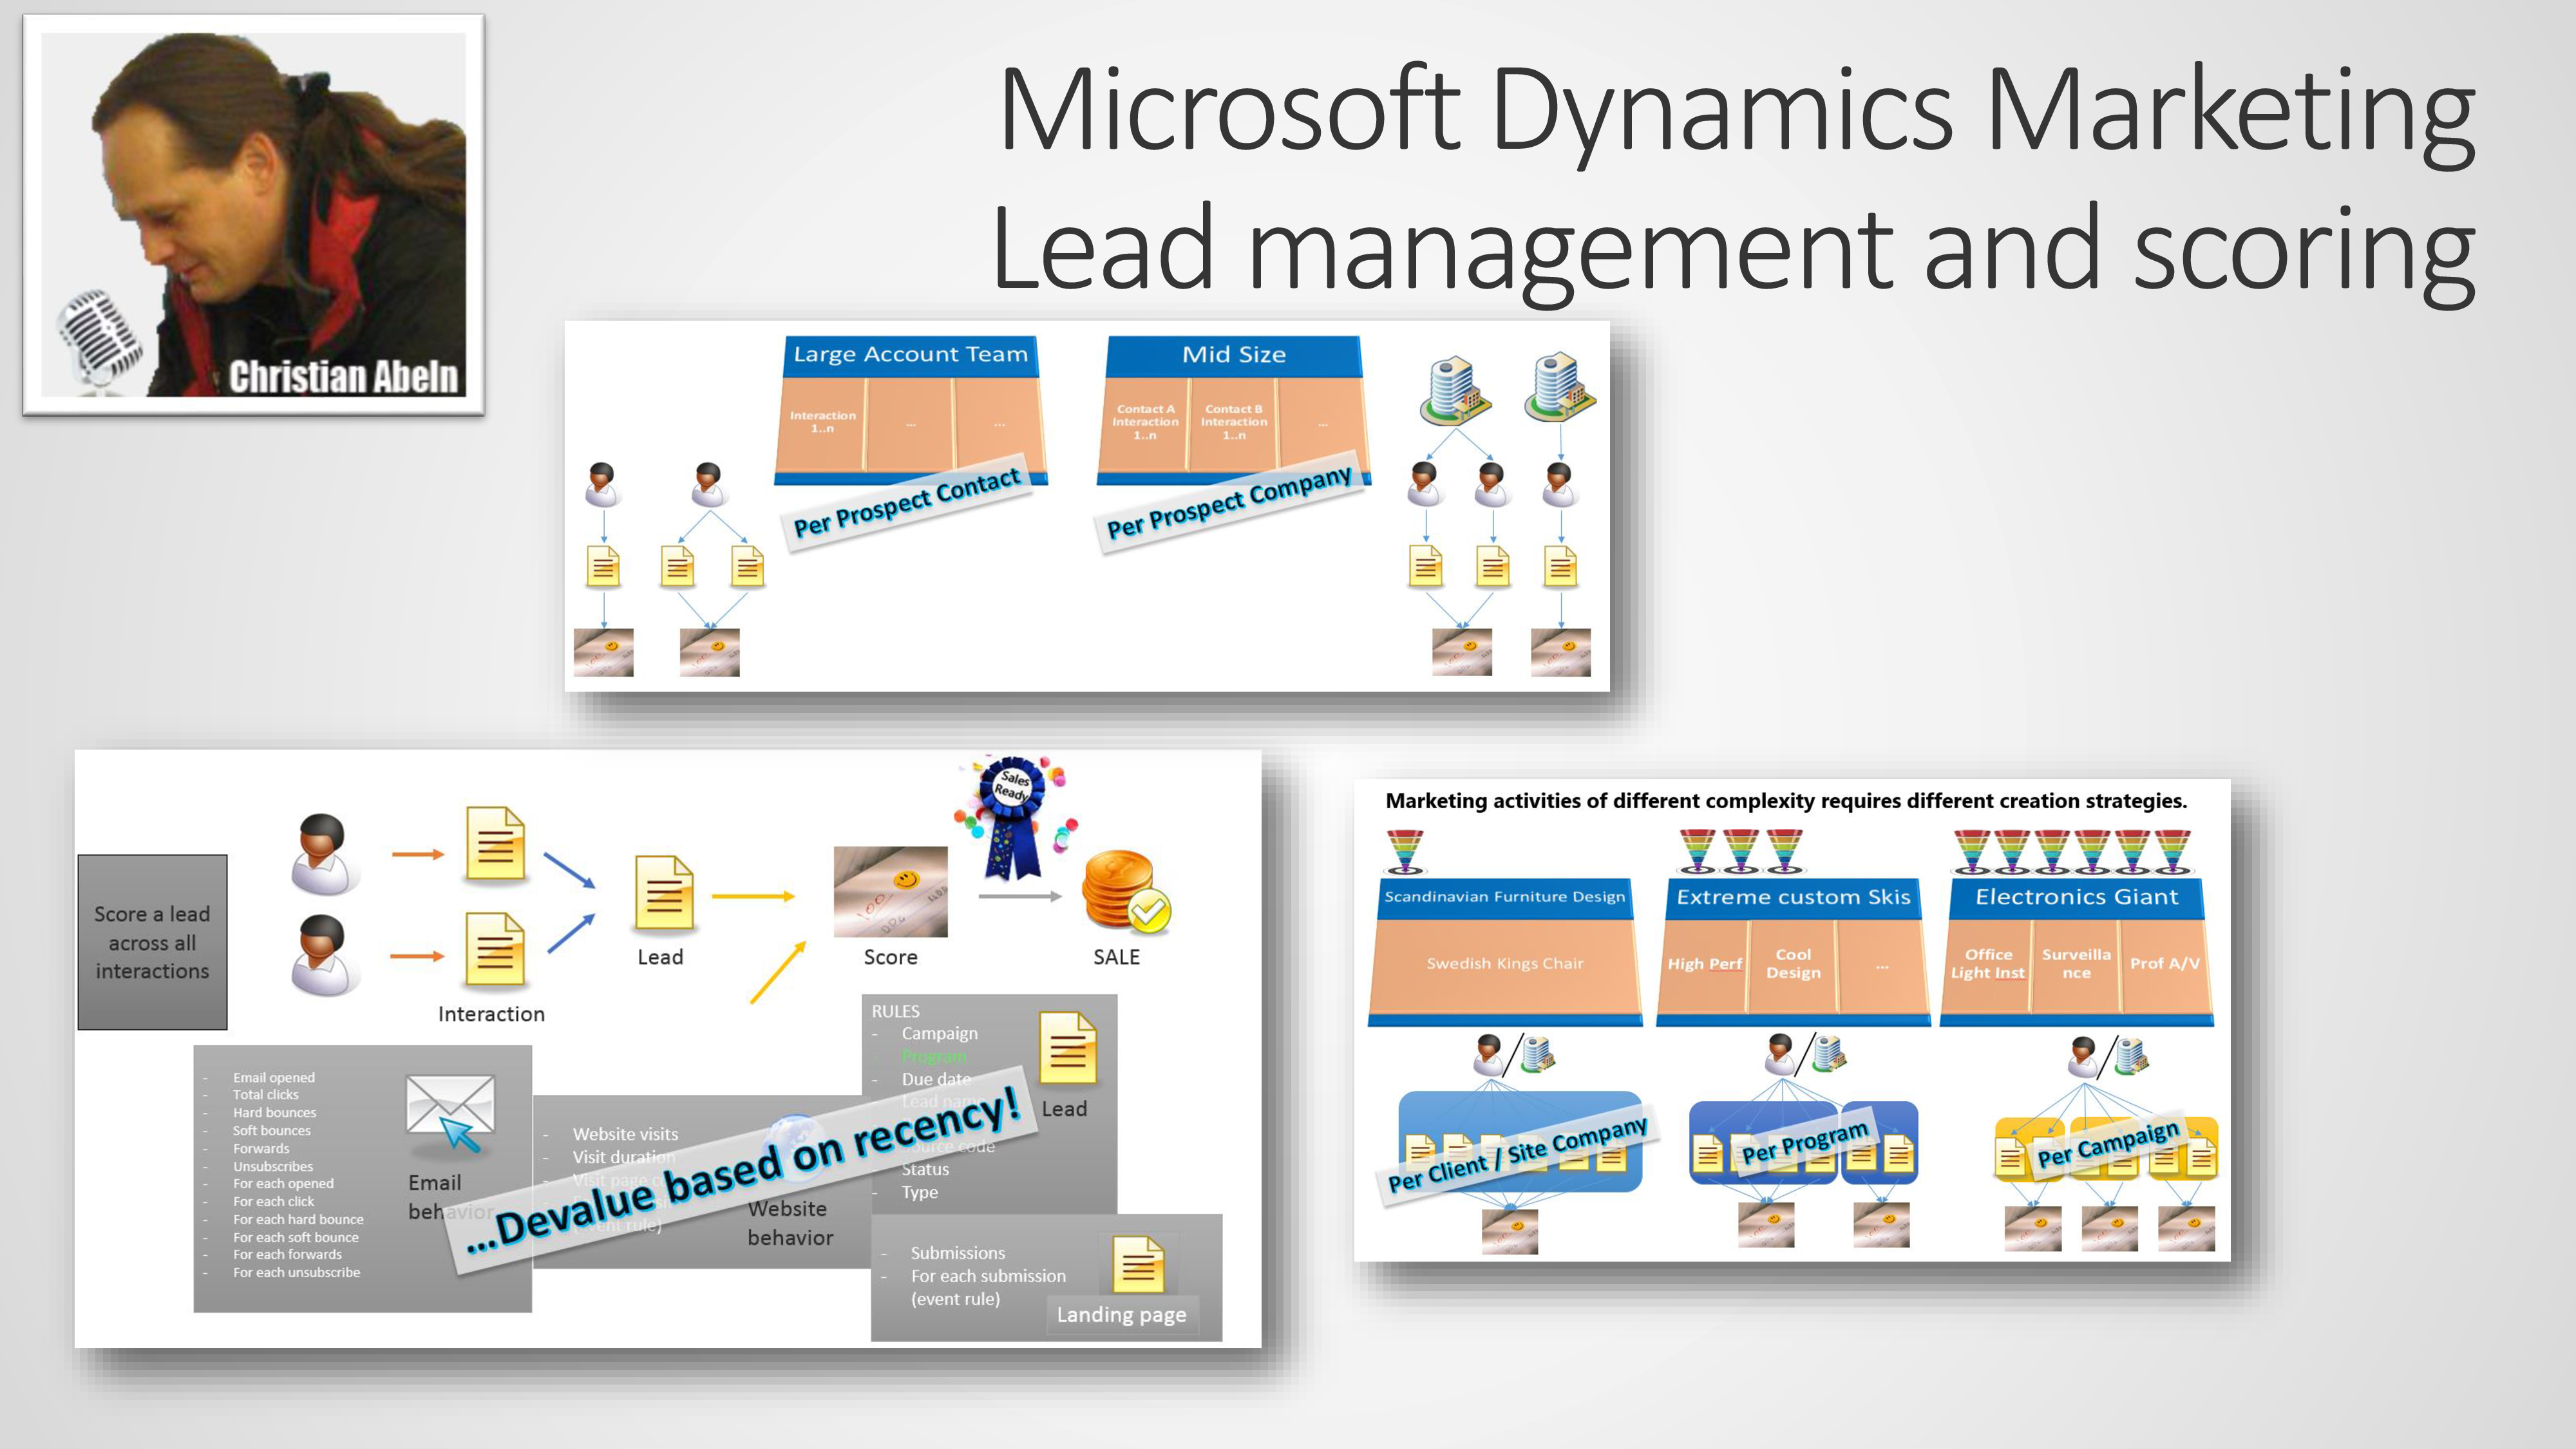 Dynamics Marketing Lead Management